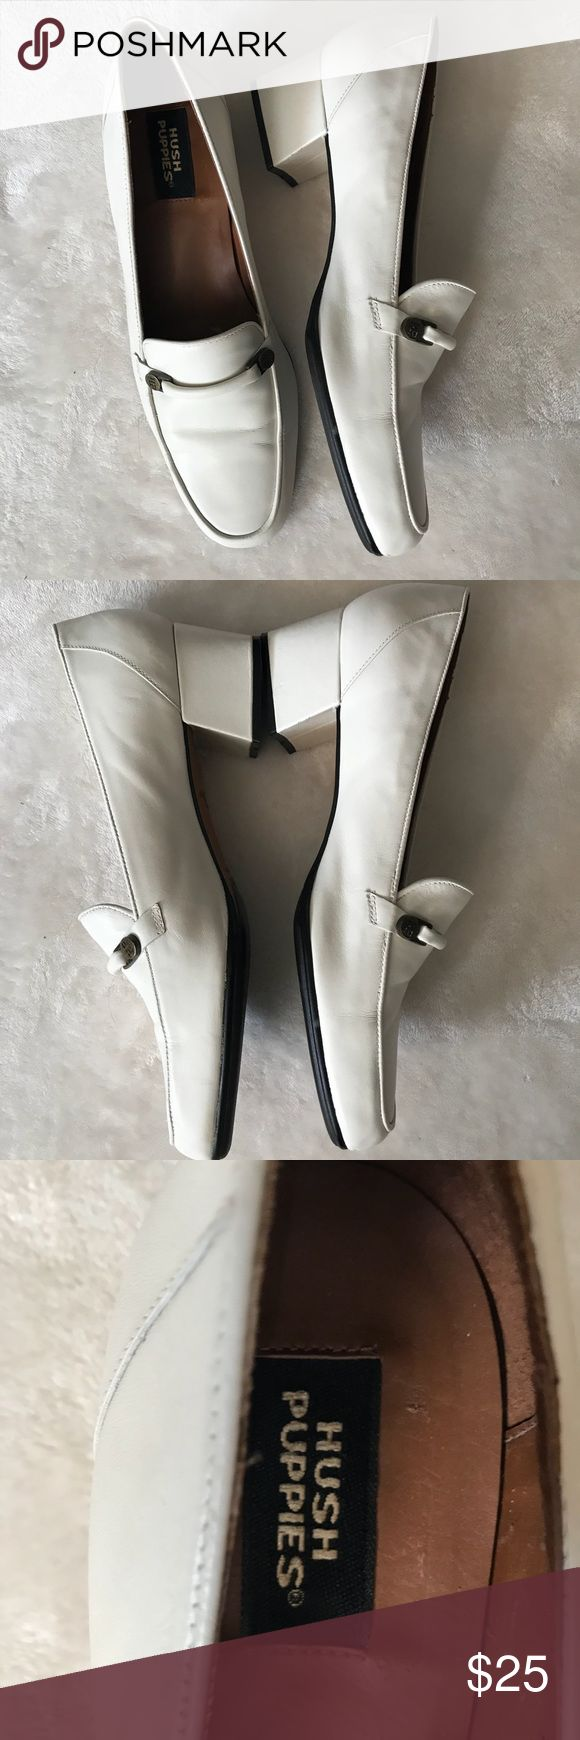 Hush Puppies Vintage White Loafers Rockabilly 9N Very good condition for vintage. Writing on bottom but other than that great condition. Rockabilly. Retro. Size 9 narrow. Hush Puppies Shoes Flats & Loafers